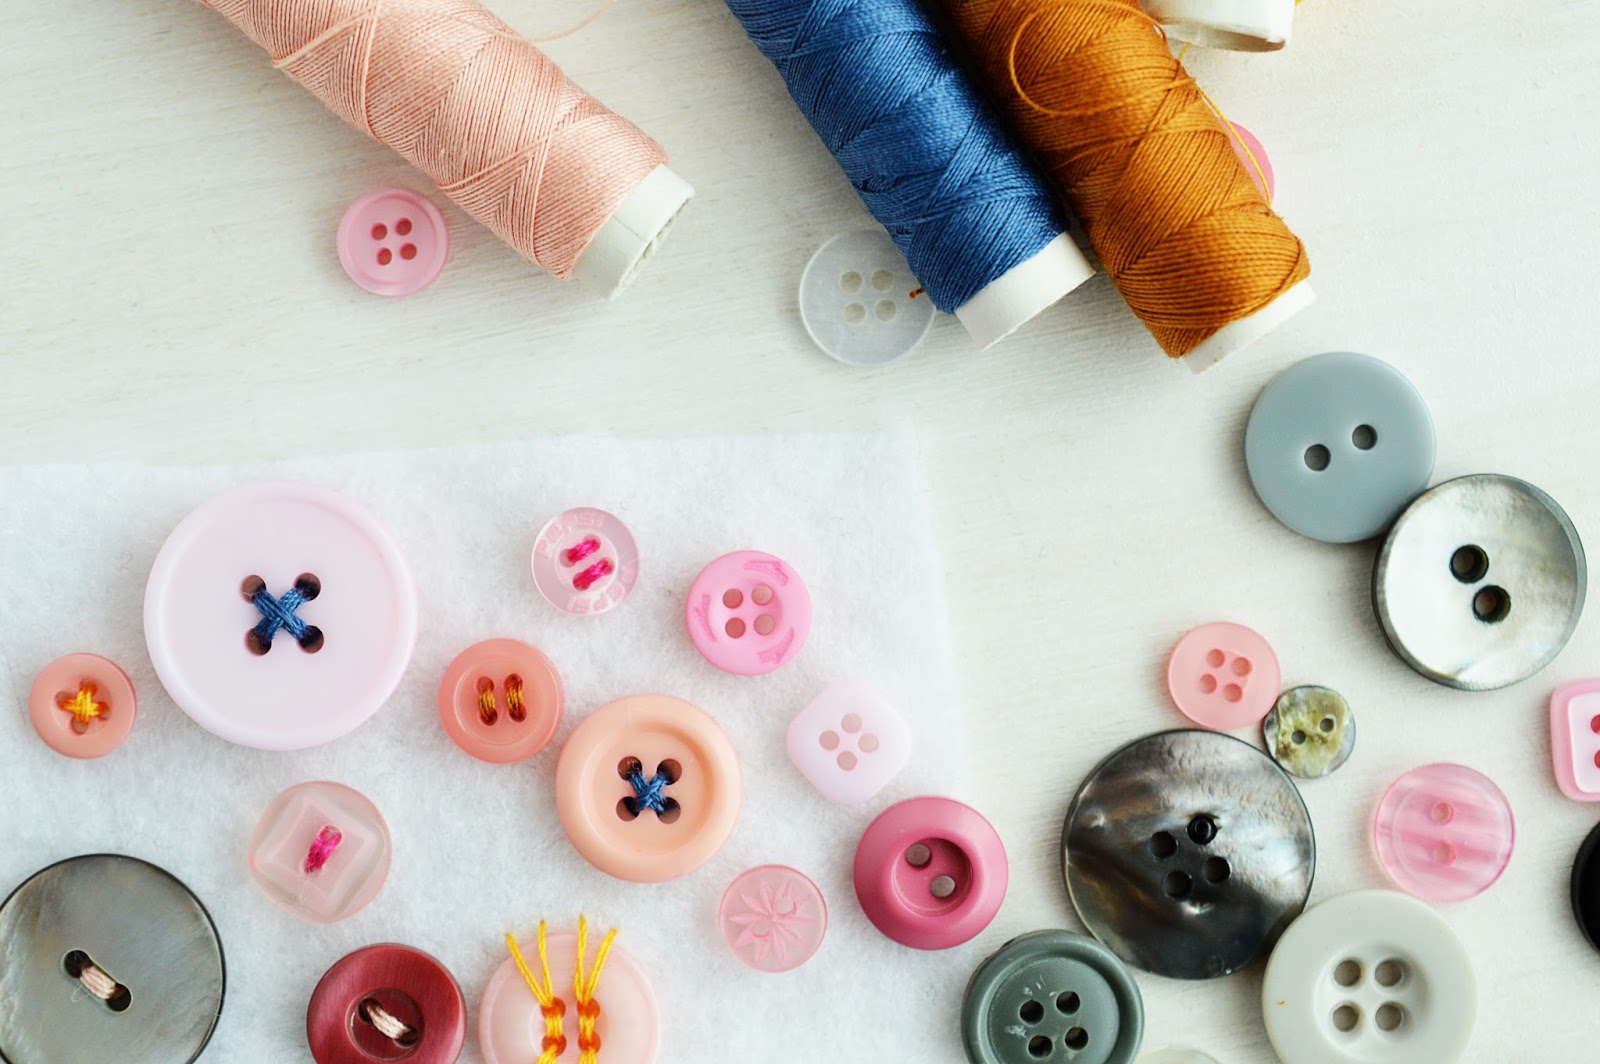 Crafter's Know-How | SEWING ON A BUTTON